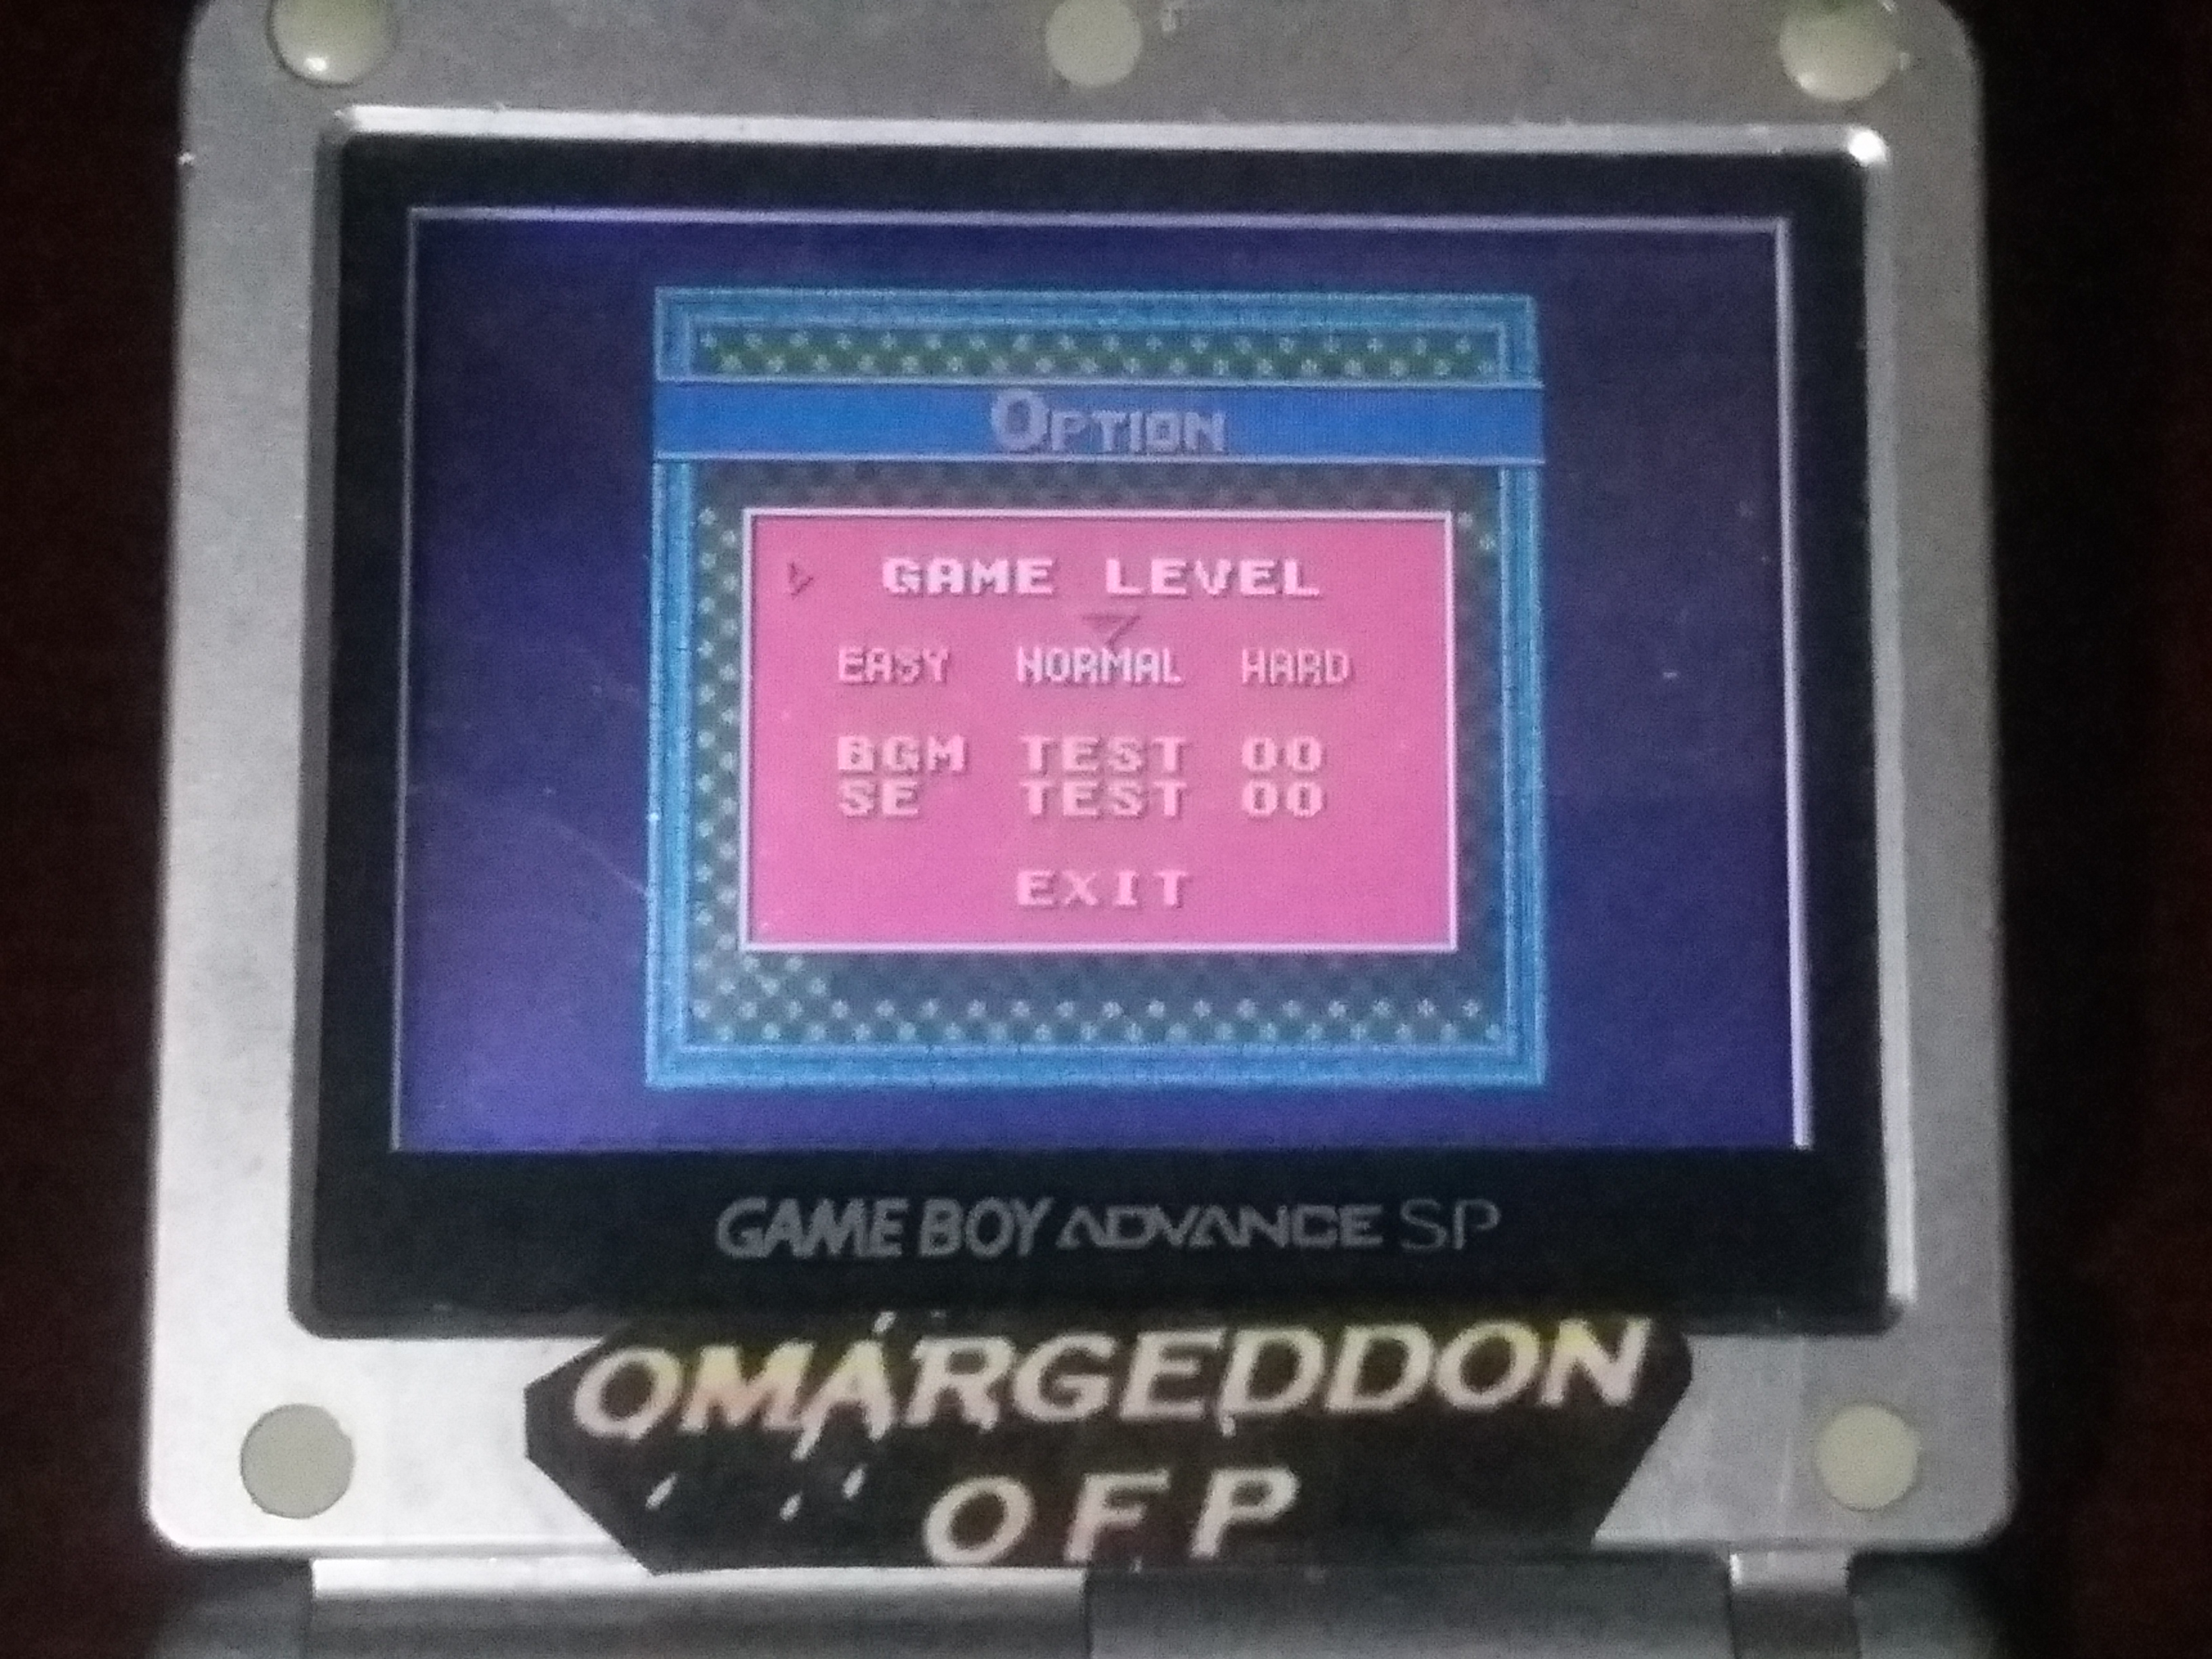 omargeddon: Ballistic [Normal] (Game Boy Color) 57,600 points on 2018-01-19 18:44:43